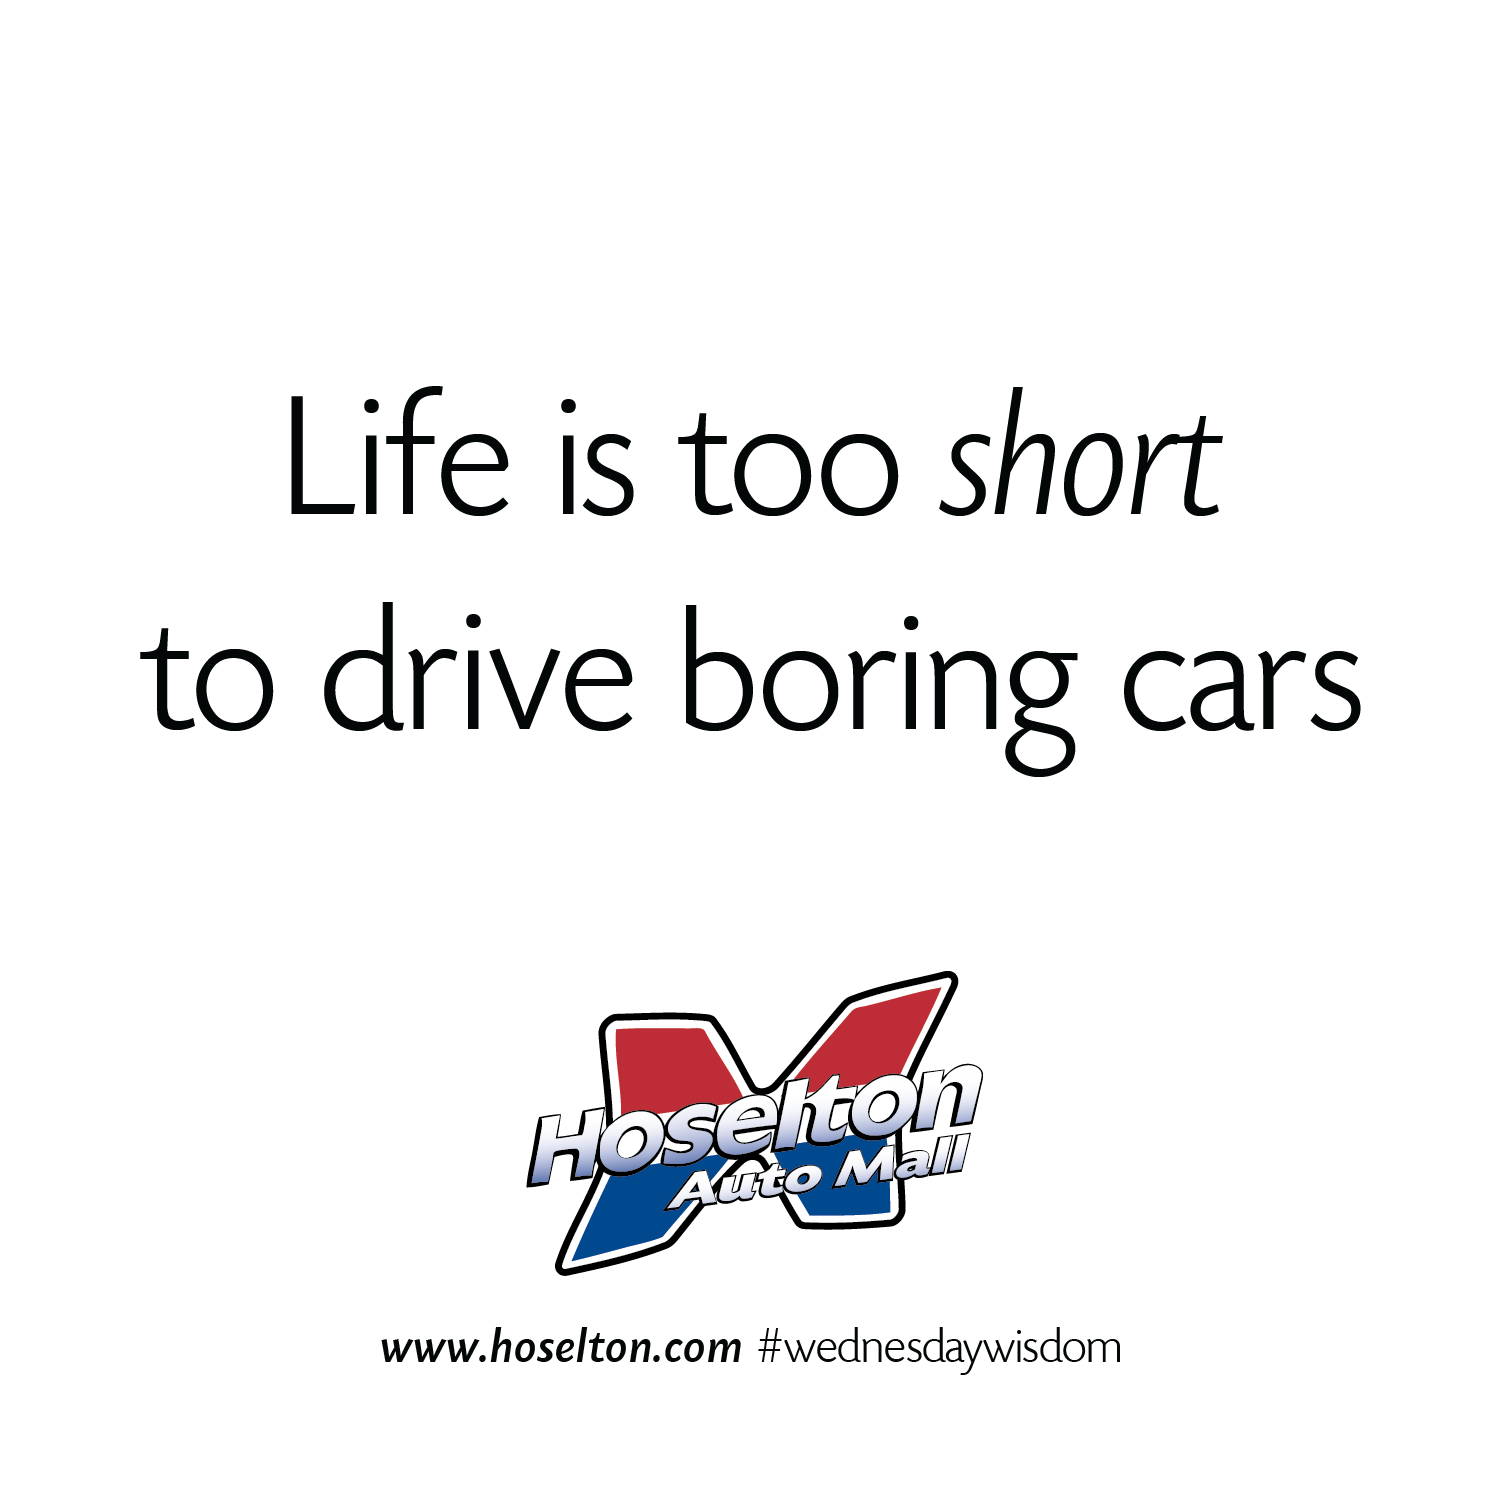 Nissan Dealers Rochester Ny >> Life Is Too Short To Drive Boring Cars Wednesdaywisdom Www